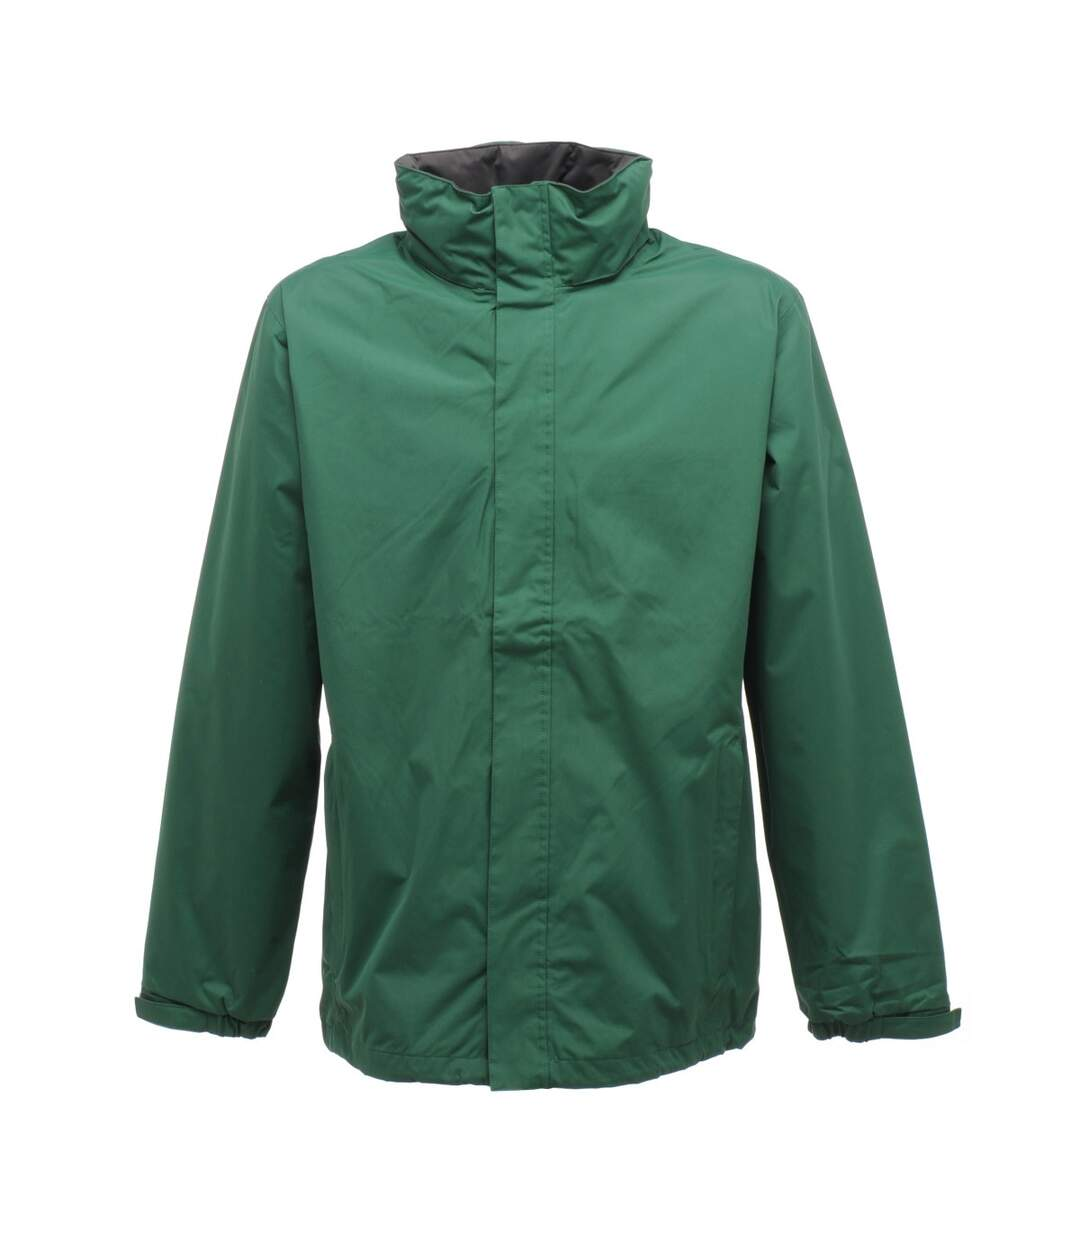 Regatta Mens Standout Ardmore Jacket (Waterproof & Windproof) (Bottle Green/Seal Grey) - UTRG1603